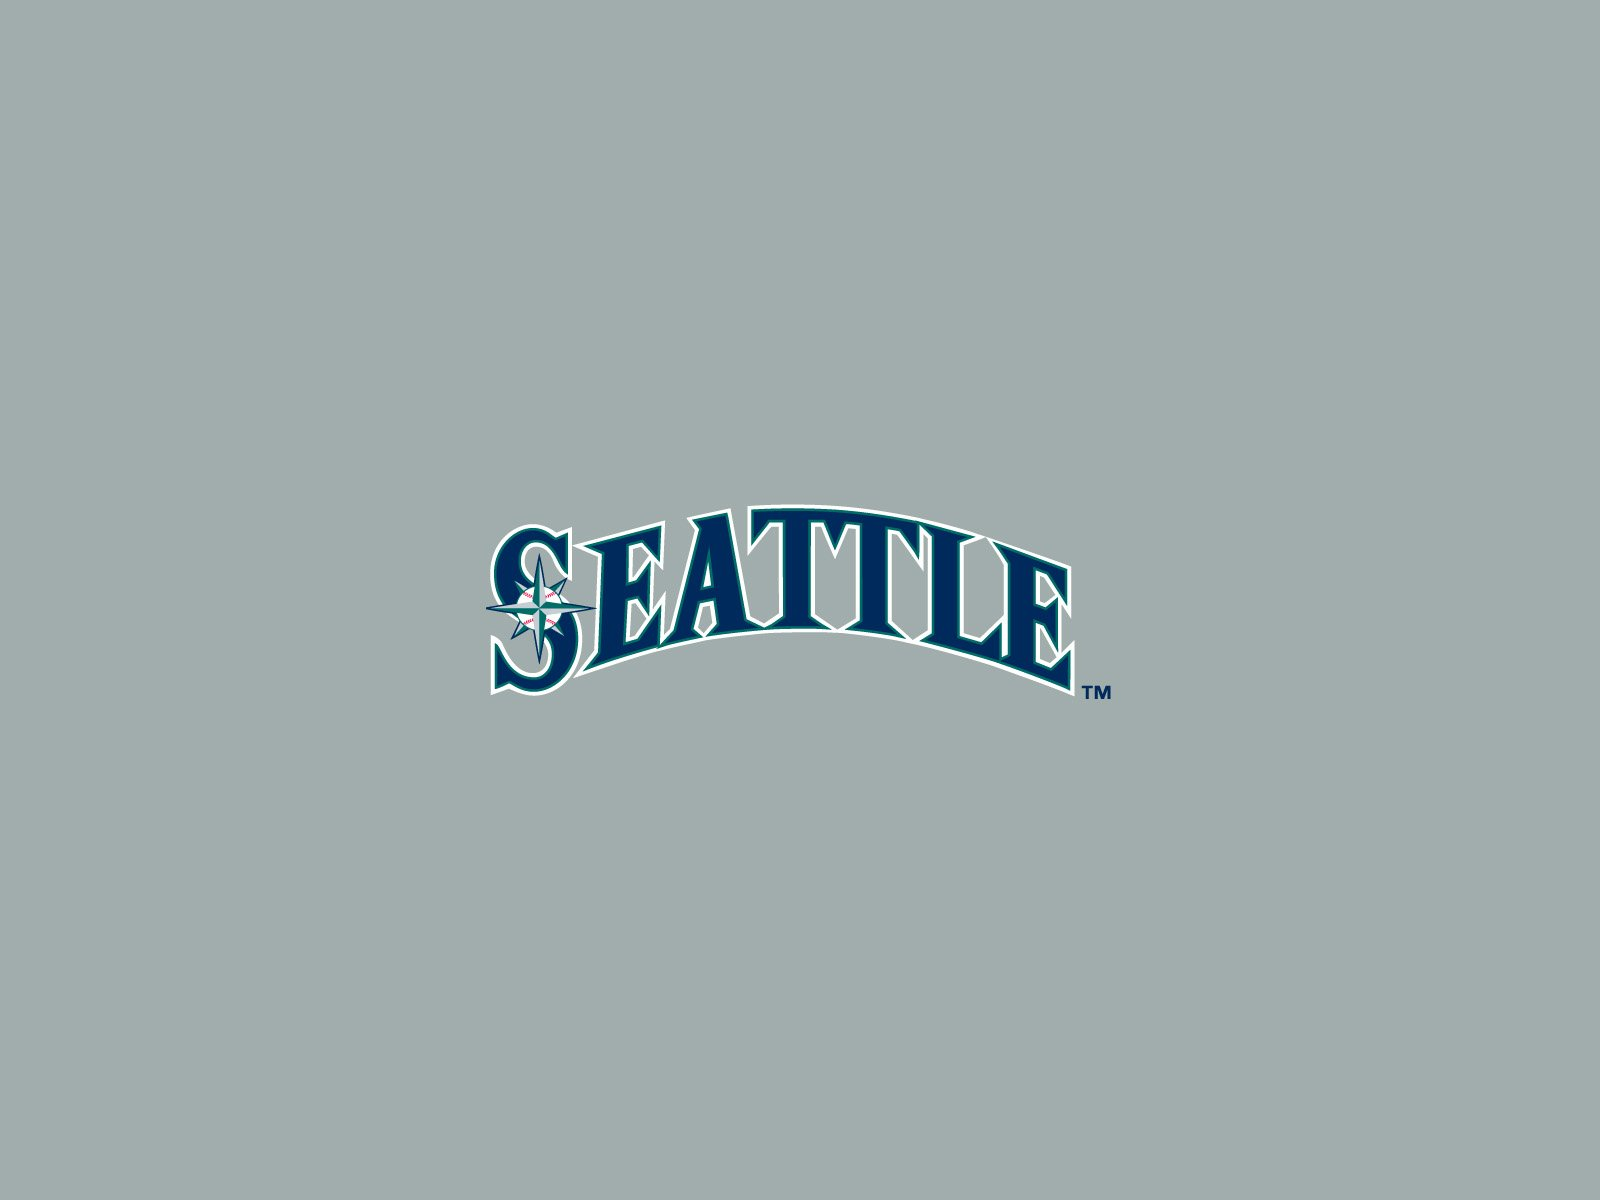 1600x1200 - Seattle Mariners Wallpapers 27